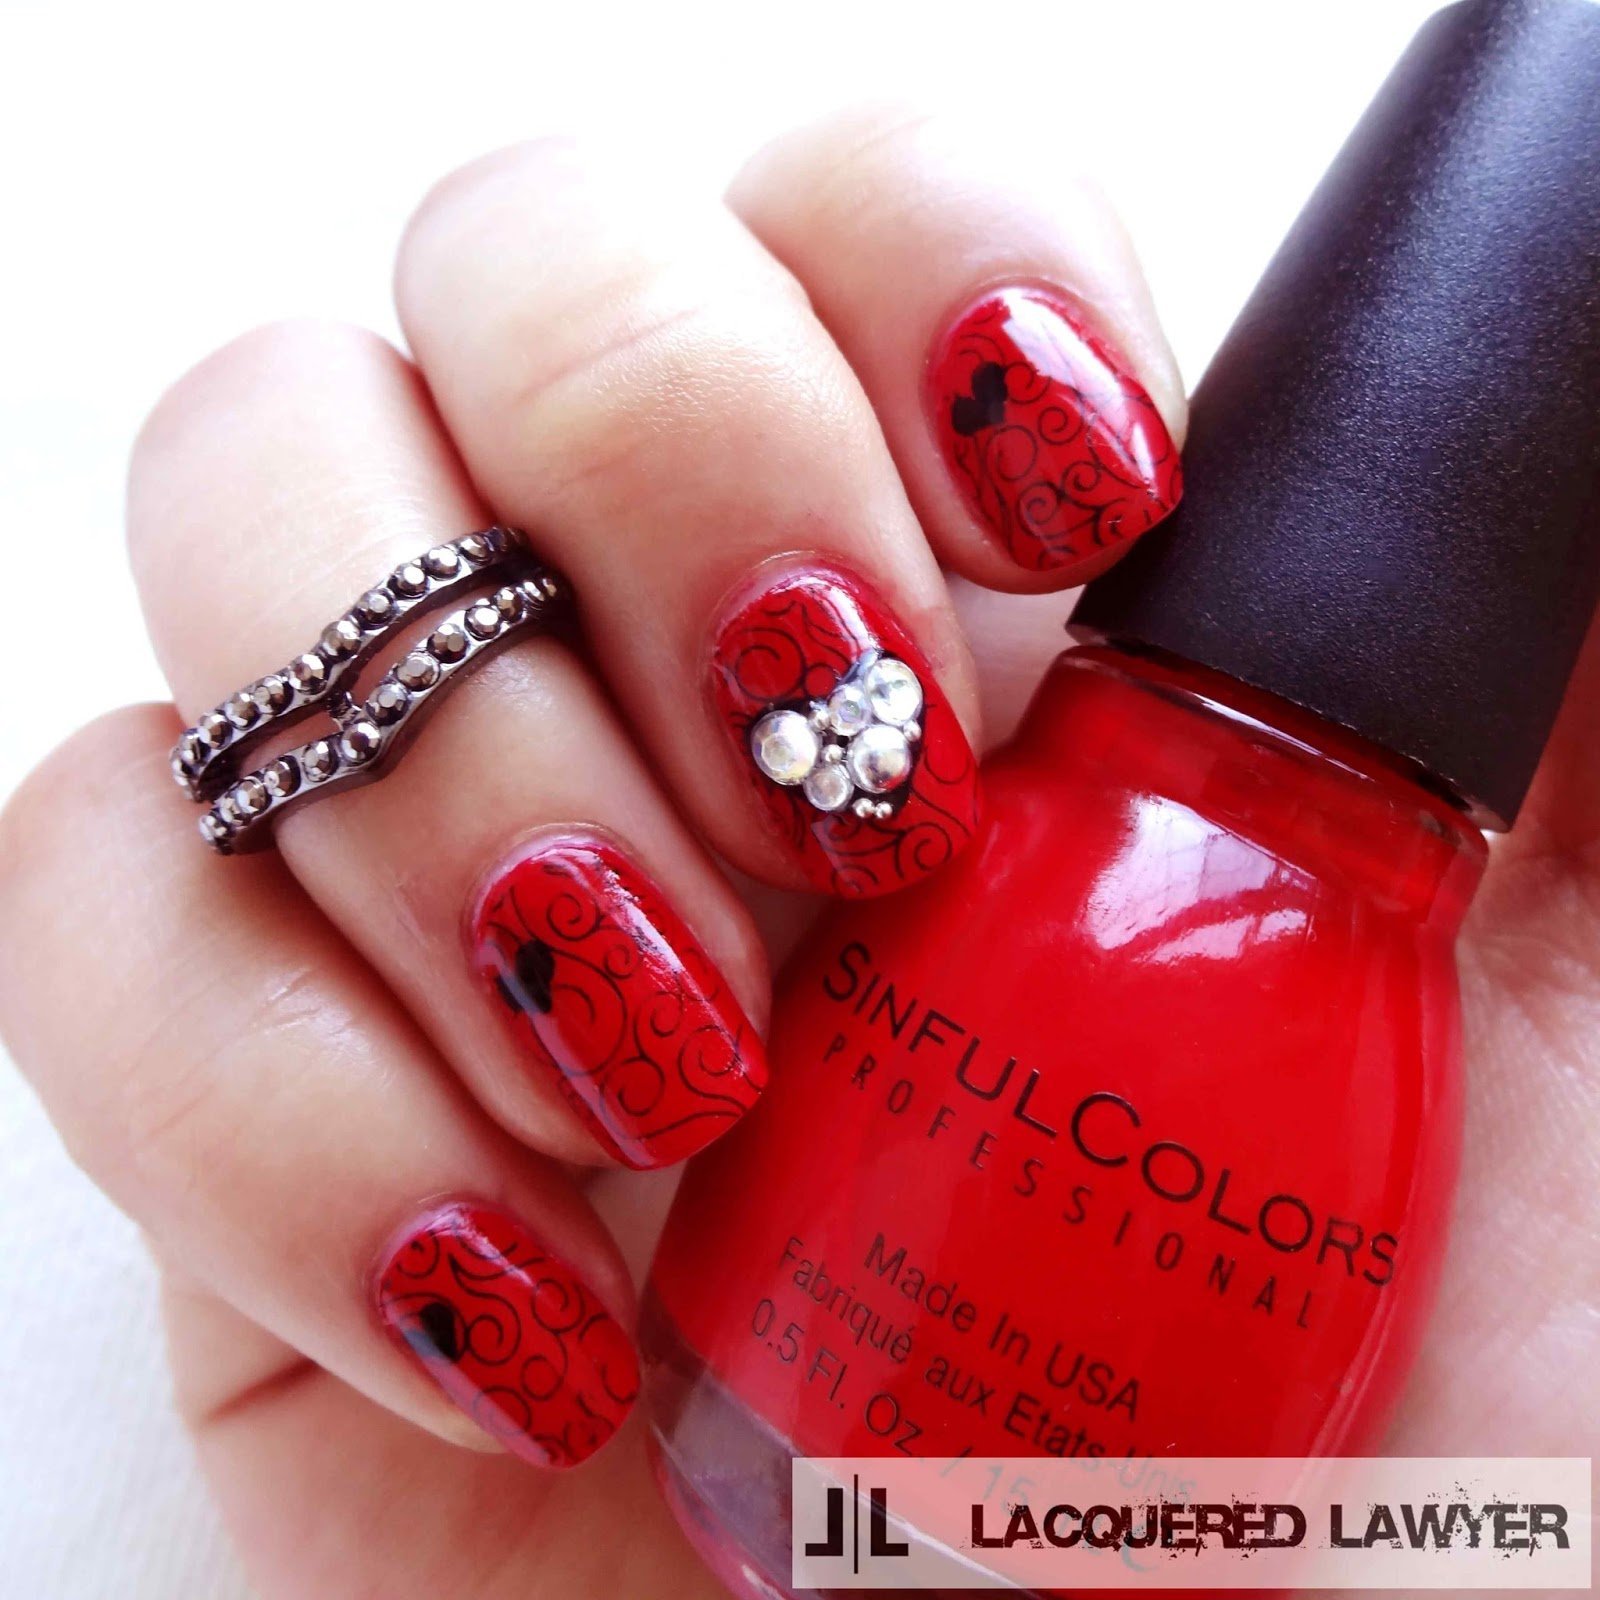 Lacquered Lawyer Nail Art Blog Sinfully Sweet